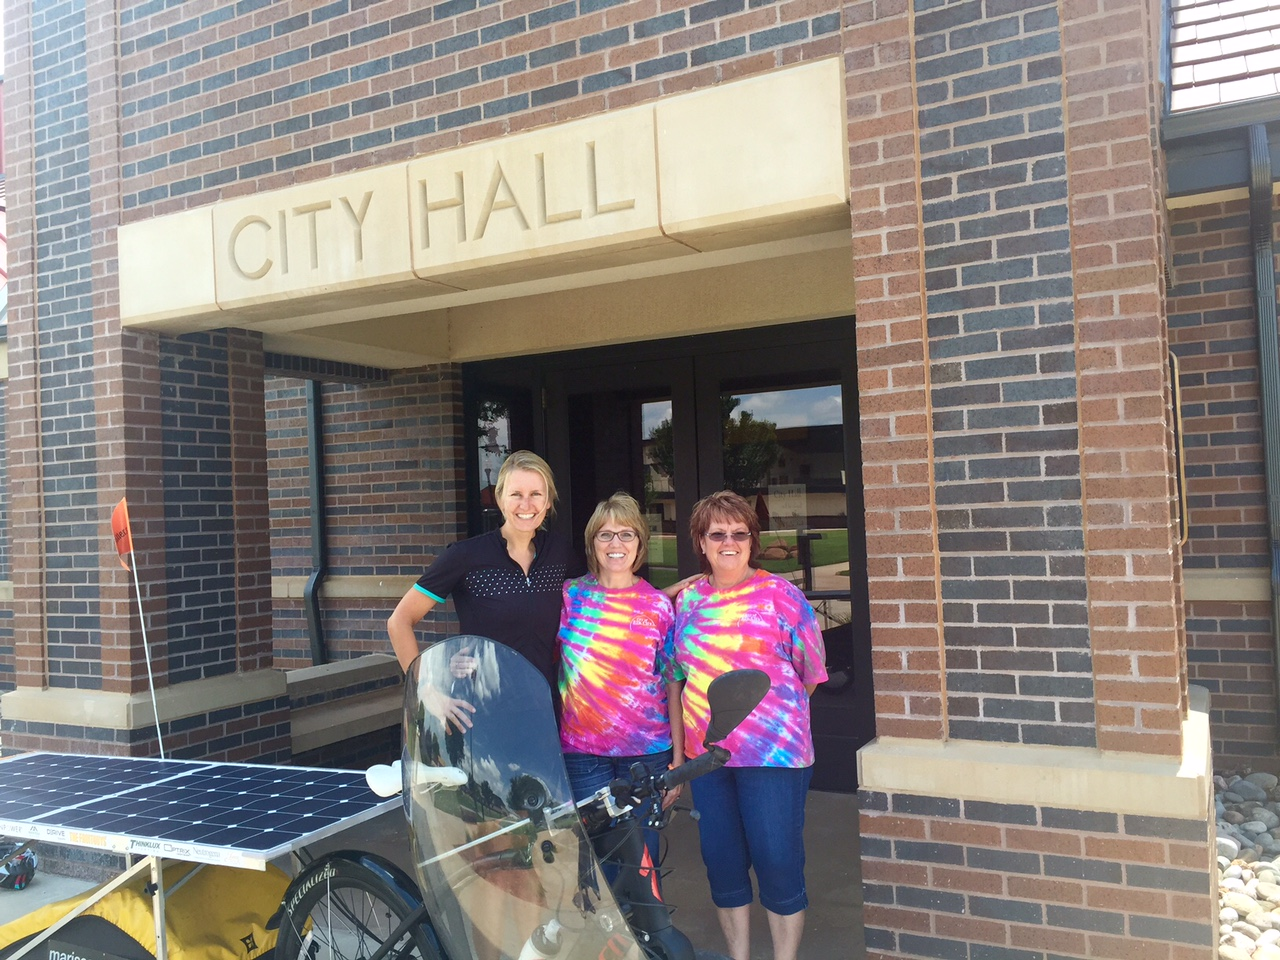 Elk City town hall members sporting their wild shirts on Fun Friday